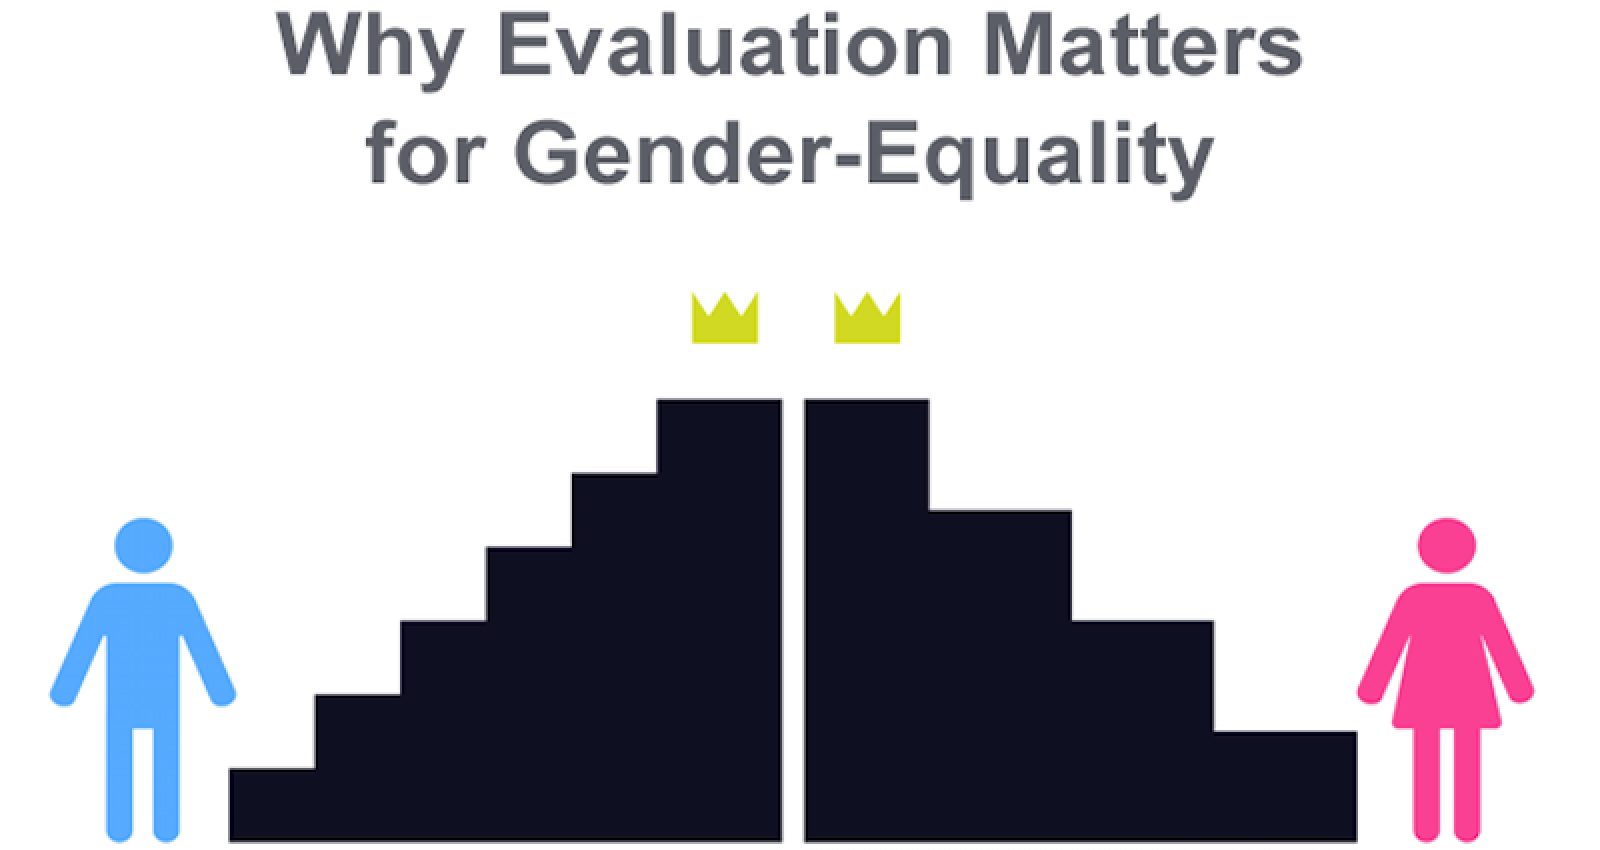 Why Evaluation Matters for Gender Equality